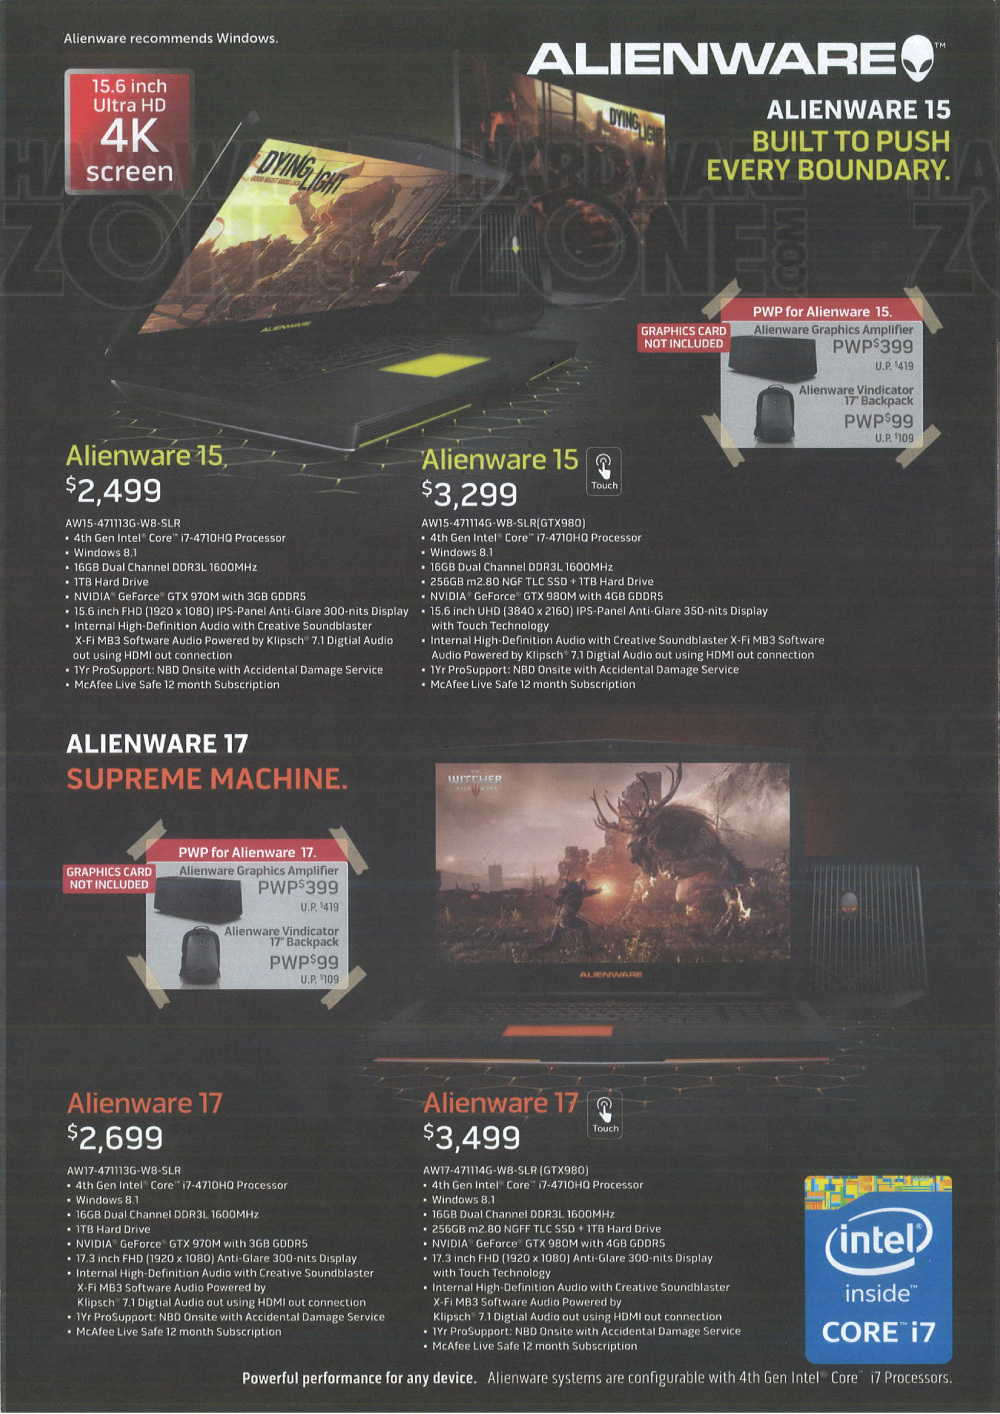 Asus gaming desktops amp monitors brochures from cee show 2016 singapore - Alienware 15 17 Brochures From Cee 2015 Singapore On Tech Show